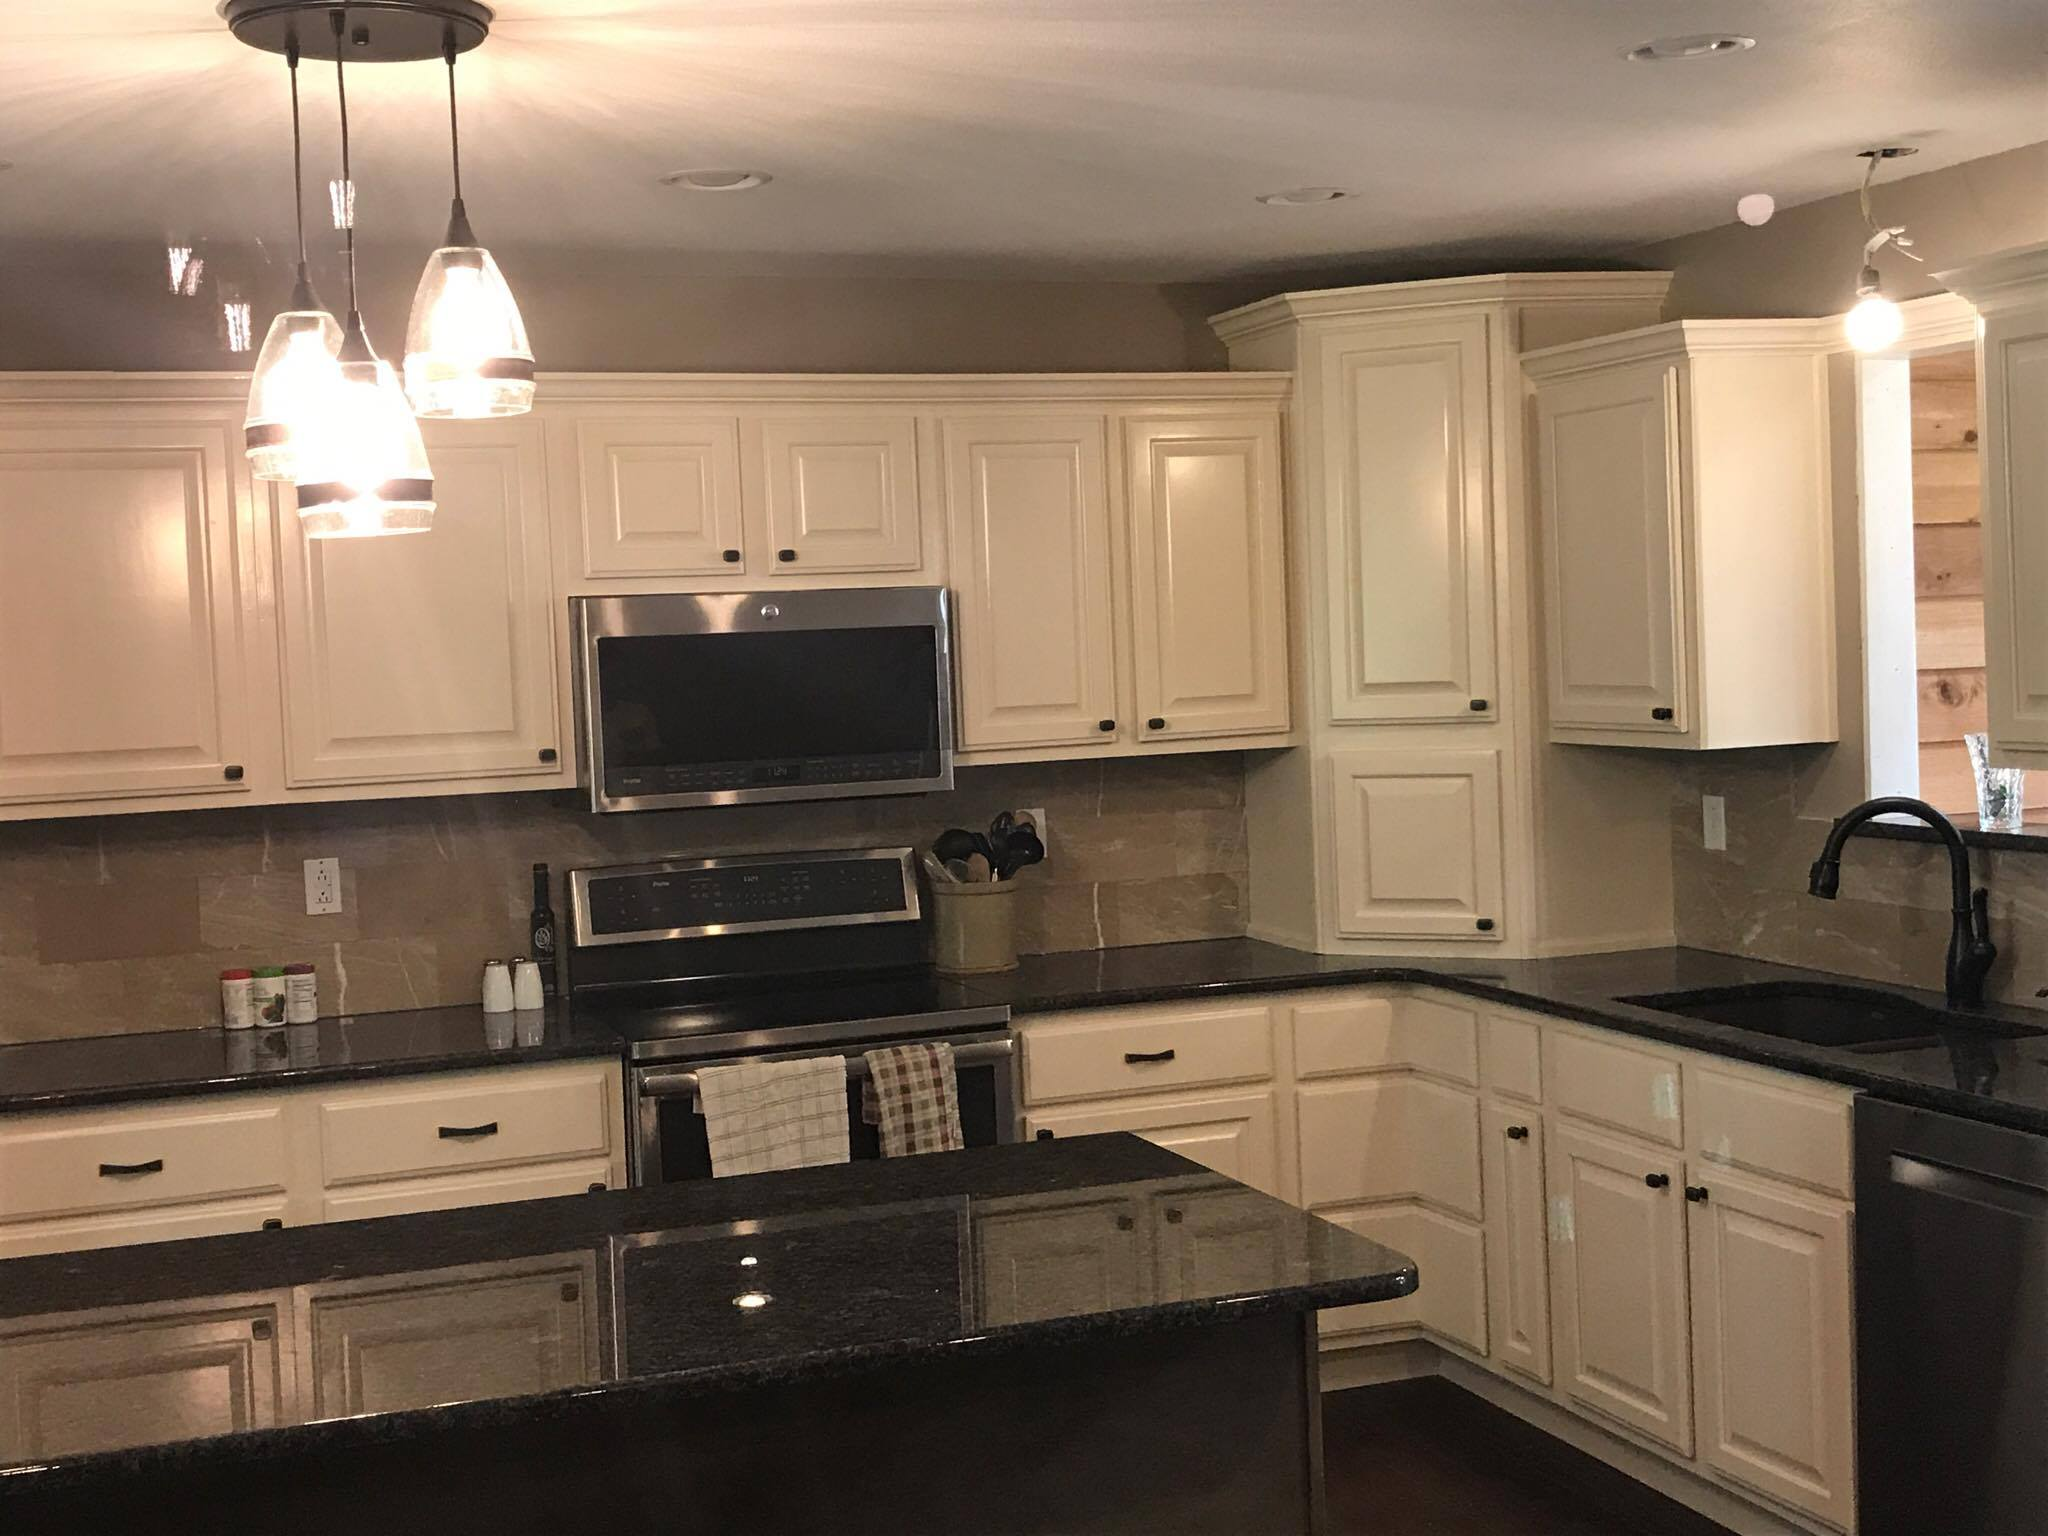 Quality Cabinets For Kitchen And Bath, In A Variety Of Woods, Our Cabinets  Are Solid Wood U2013 NO Pressboard. We Build With All Kinds Of Wood, Including  Oak, ...